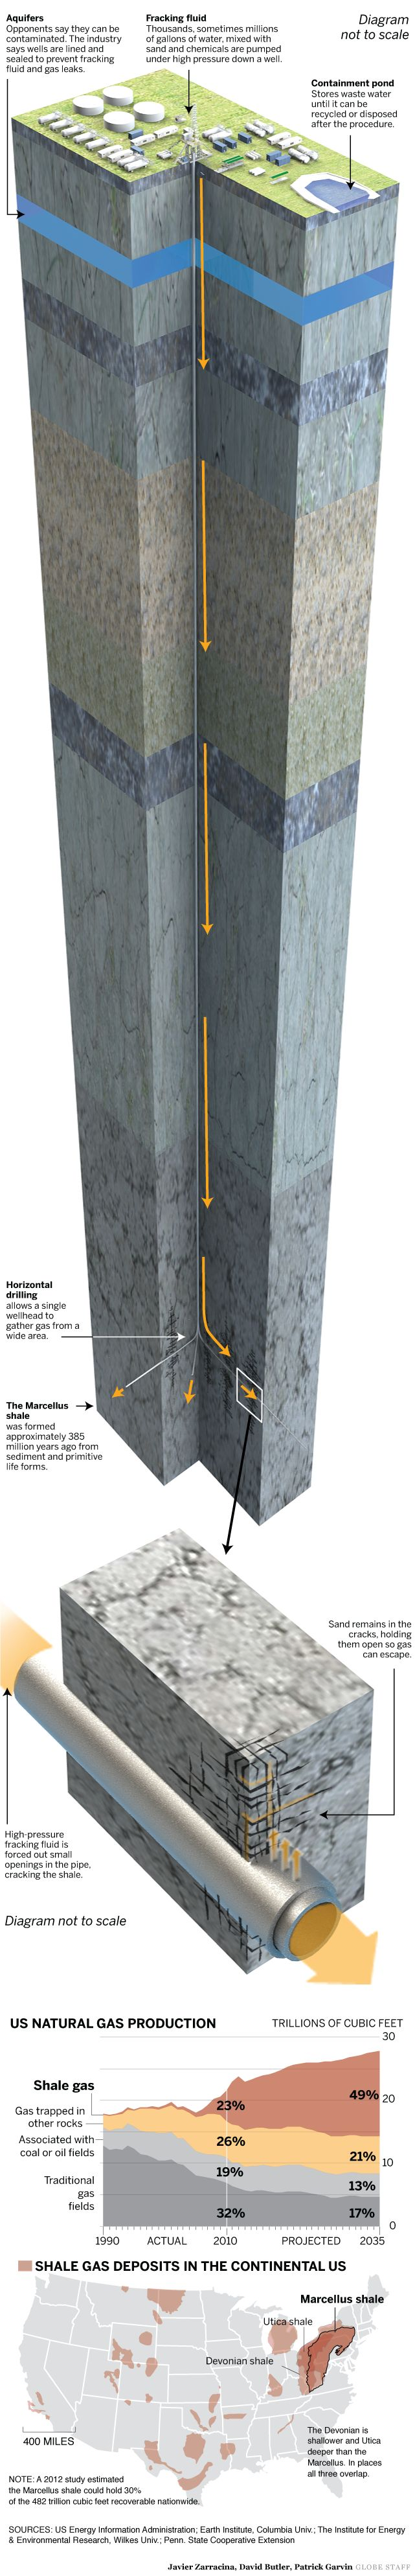 How Fracking (Hydraulic fracturing) Works: Graphic by David Butler, Javier Zarracina and Patrick Garvin. http://bostonglobe.com/business/2012/04/28/shale-gas-boom-has-benefits-and-risks/pbbY4kStbXH3kx9U2QKo1J/igraphic.html